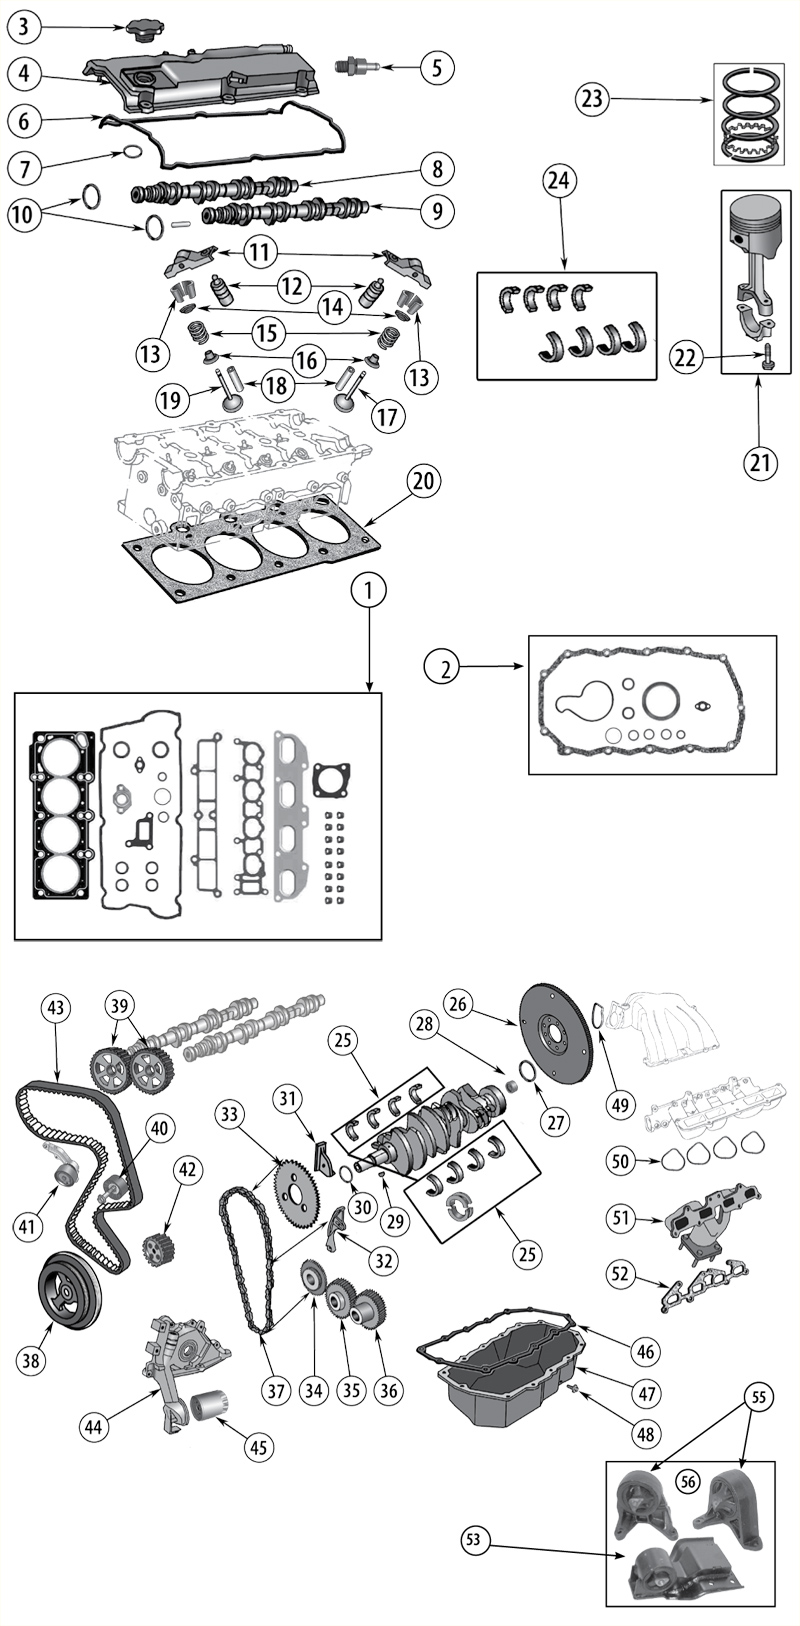 Chevy S10 Water Pump Diagram as well Lincoln Navigator Belt Diagram as well Ford 1 9l Engine Diagram besides  on 1991 chevrolet s 10 4 3l serpentine belt diagram